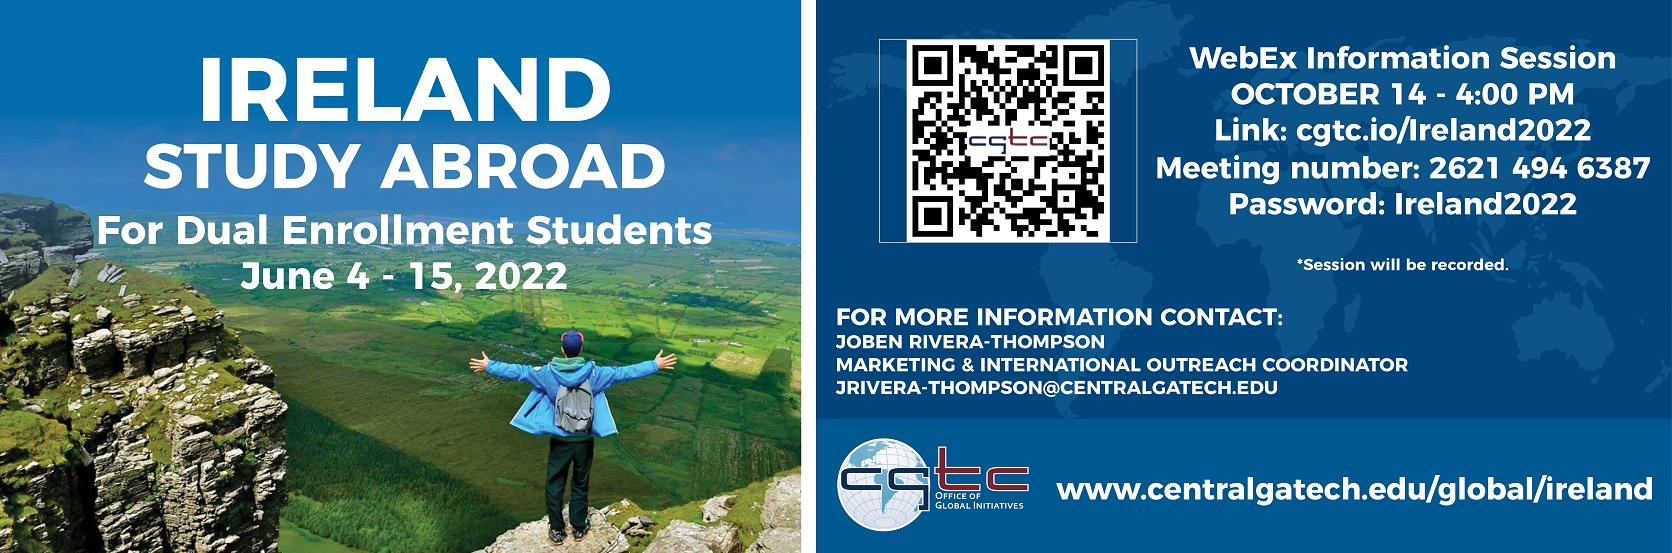 Ireland Dual Enrollment Study Abroad information session is Thursday October 14 at 4 p.m. via WebEx.